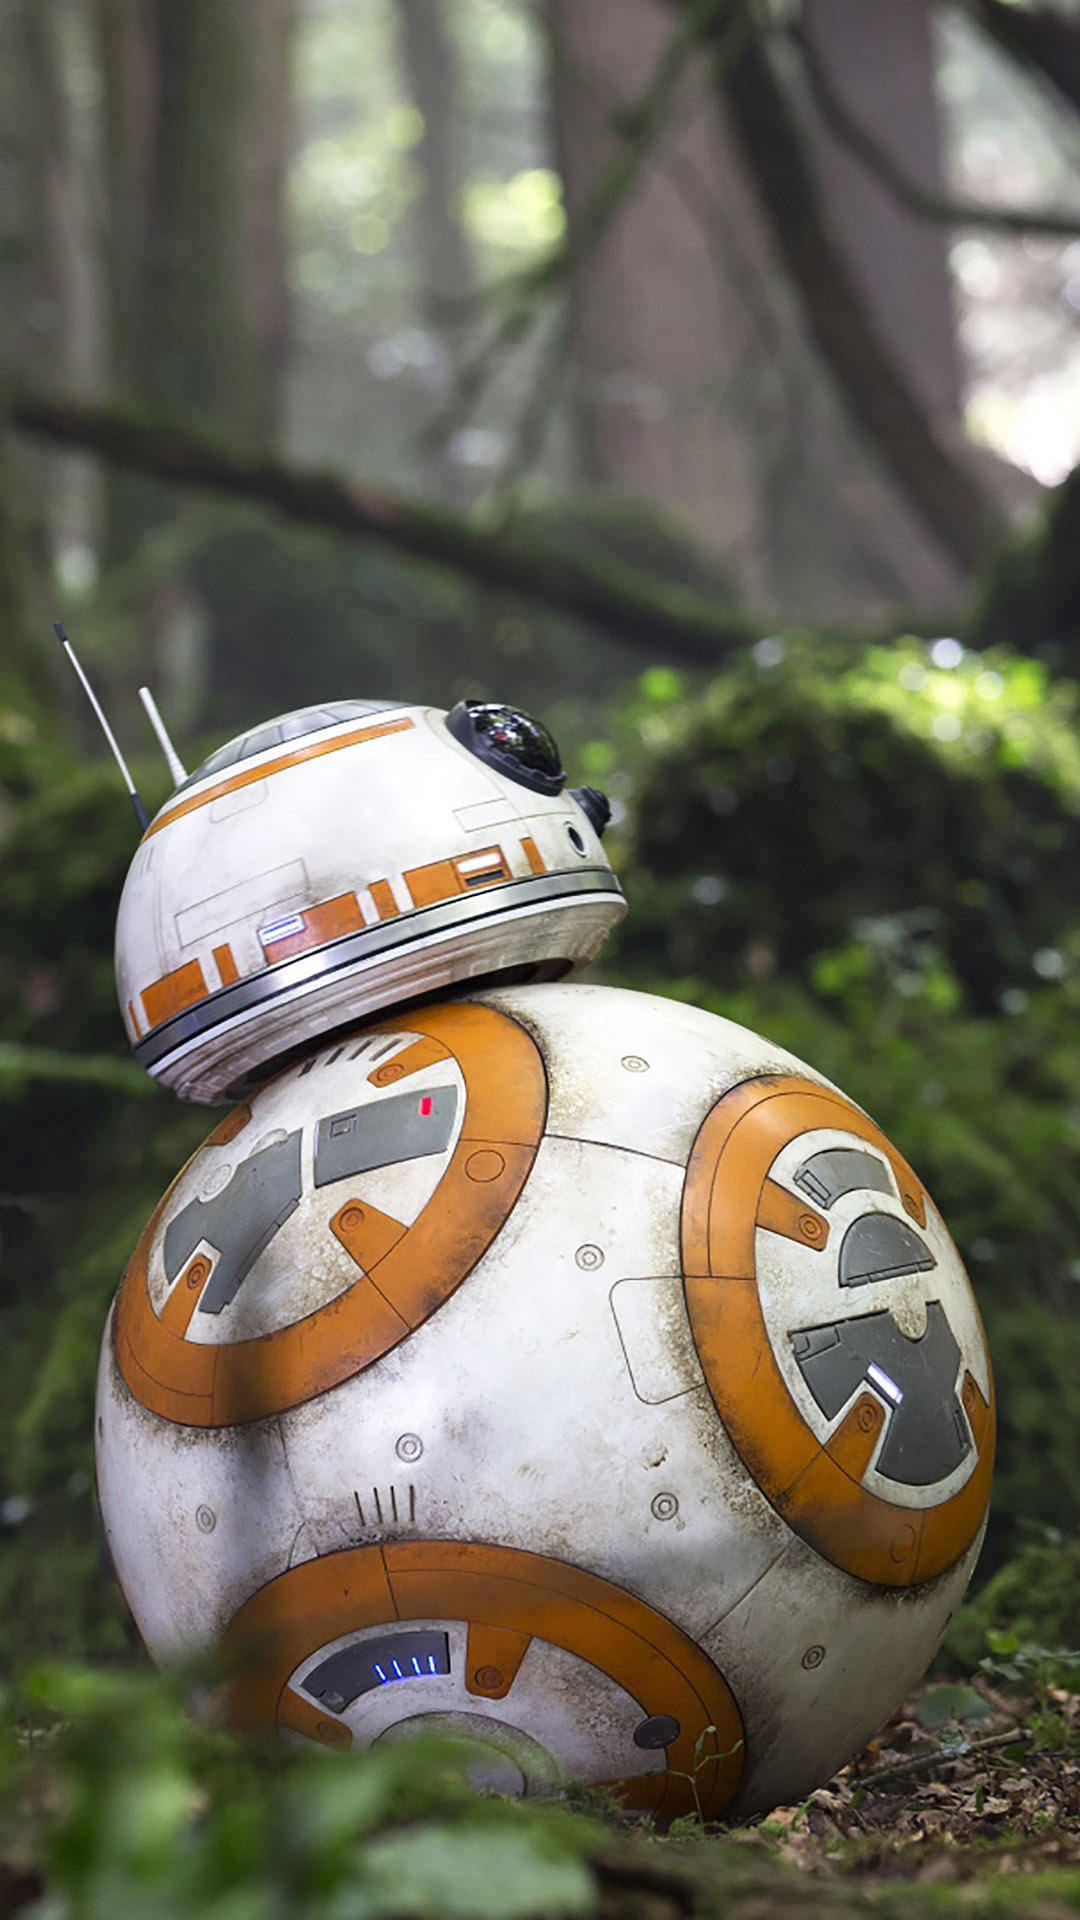 bb8 wallpaper hd - photo #14